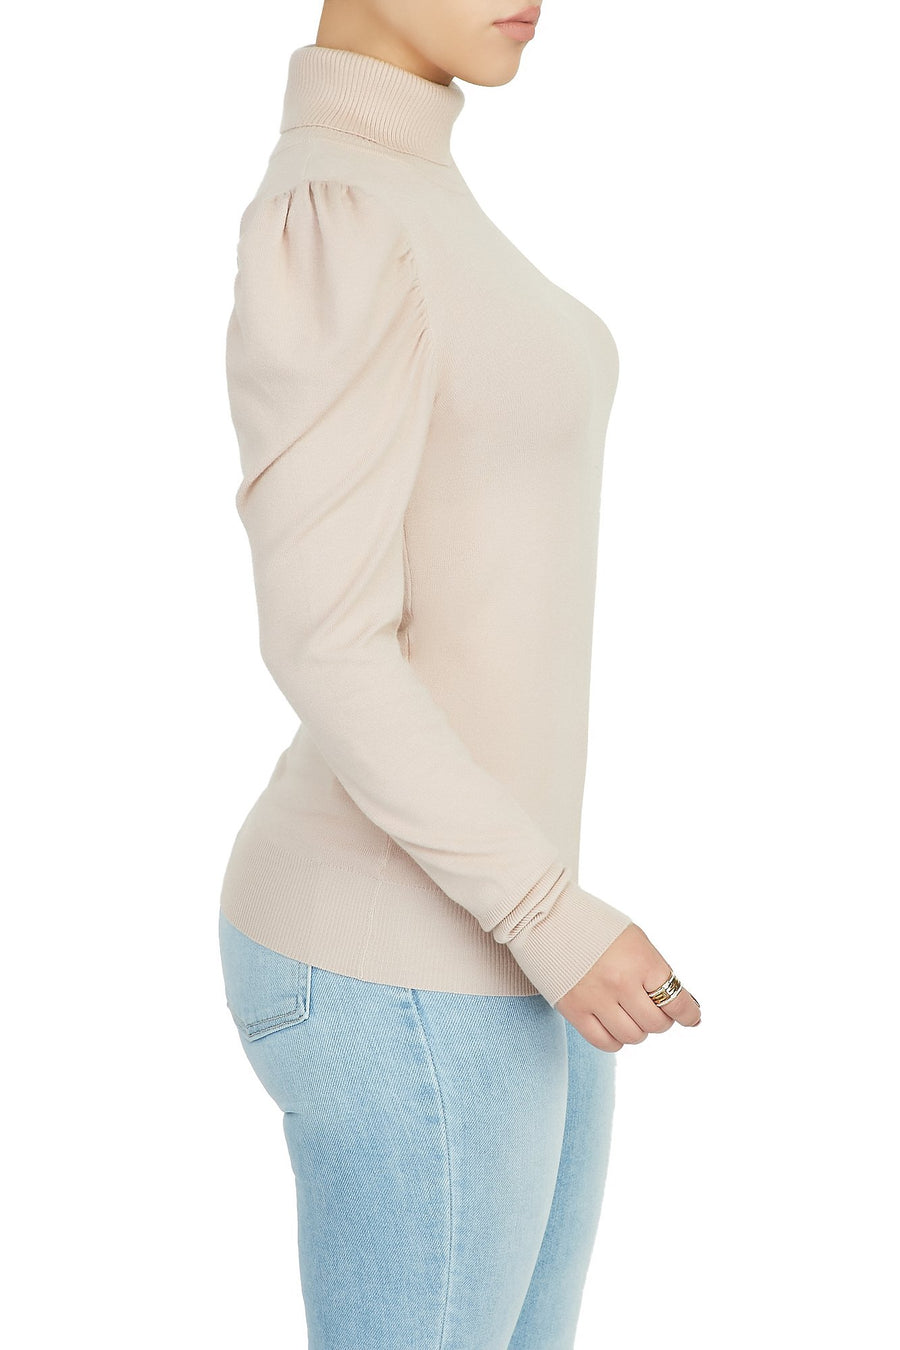 Puff Begone Knit Top - Pink